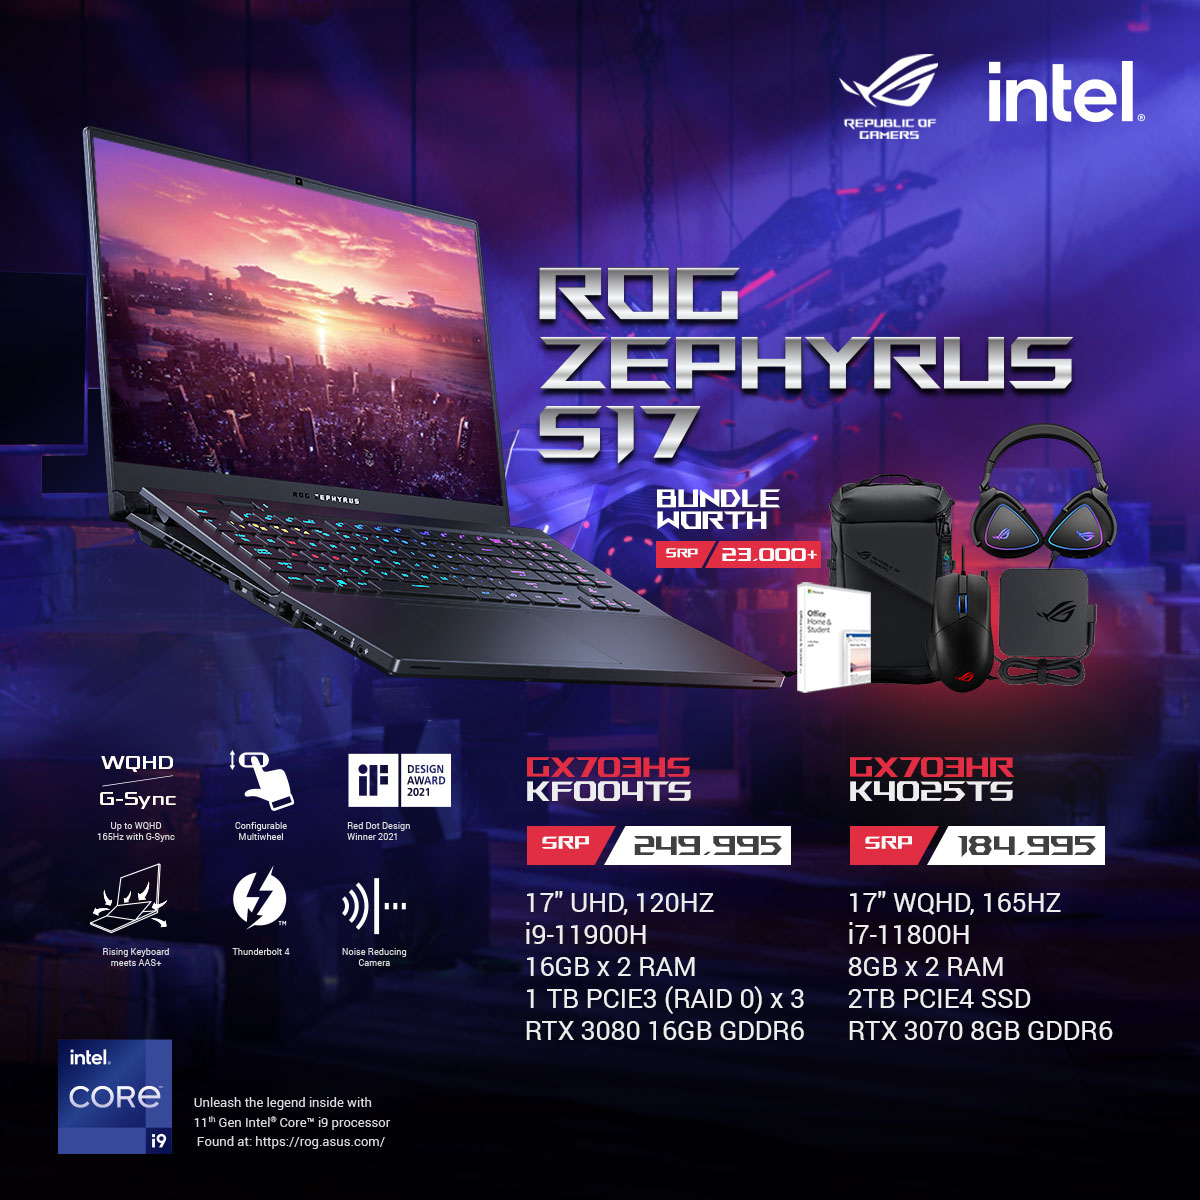 ROG Zephyrus S17 Key Features and Price